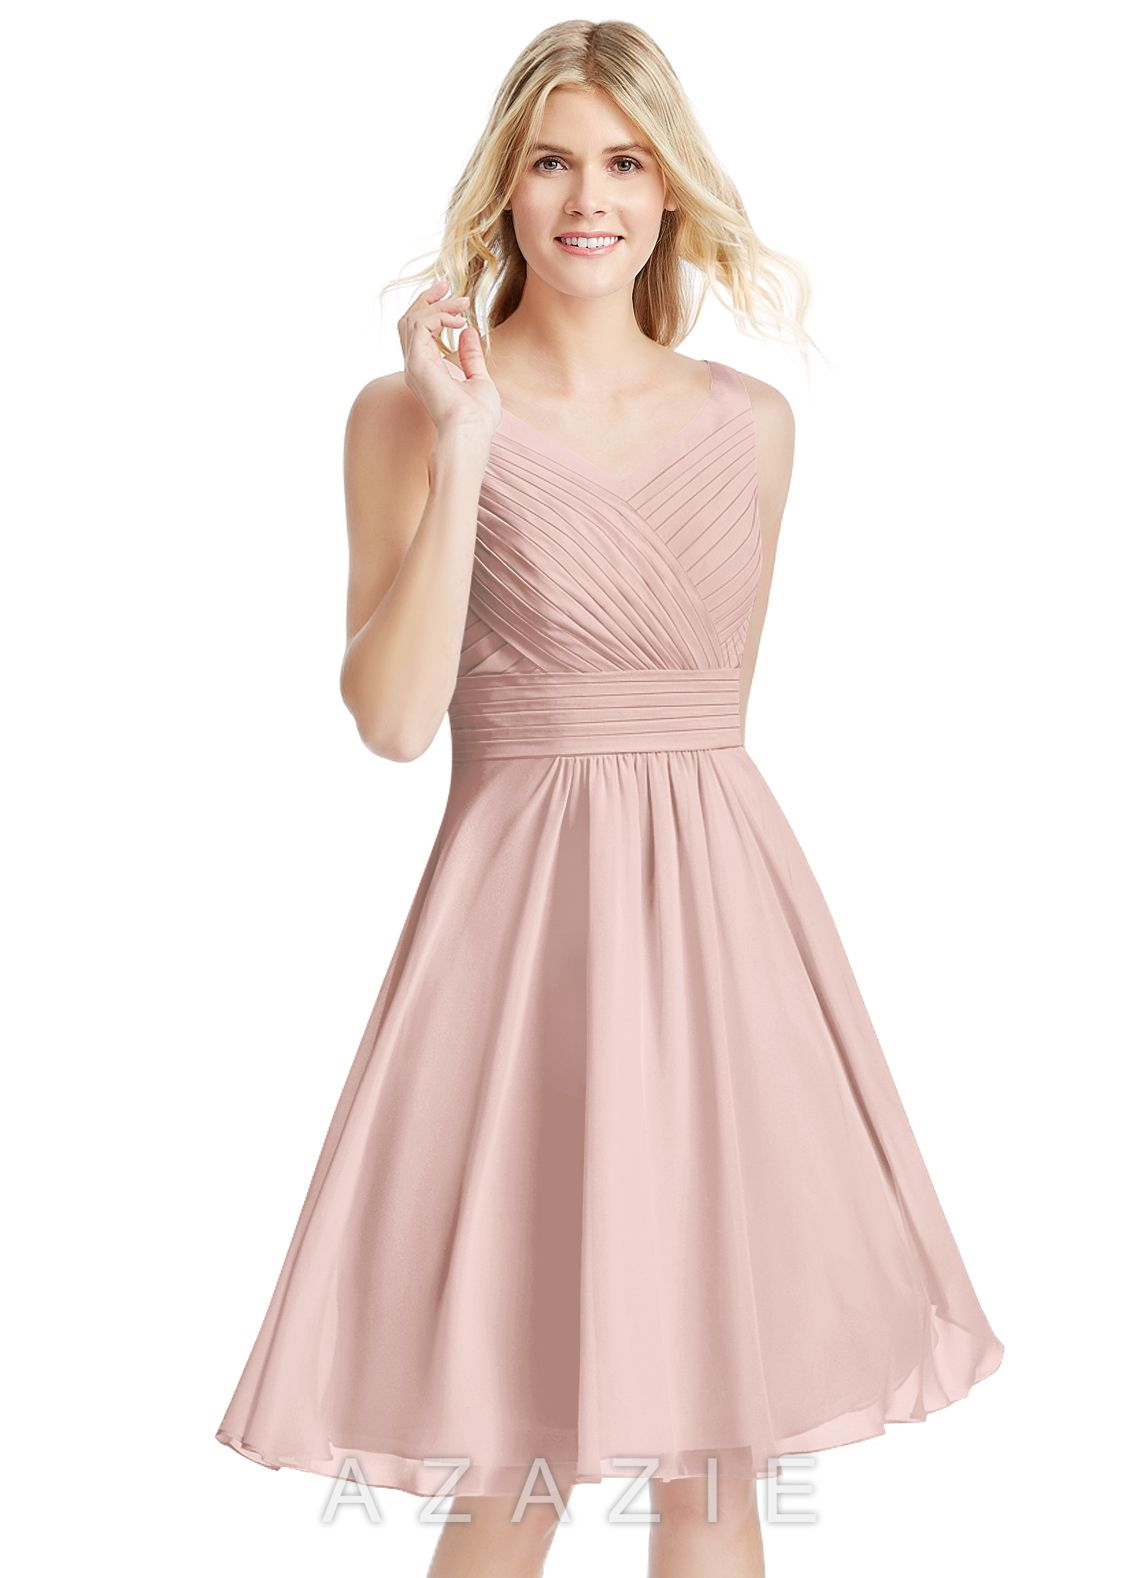 54523cb99c4 Shop Azazie Bridesmaid Dress - Grace in Chiffon. Find the perfect made-to-